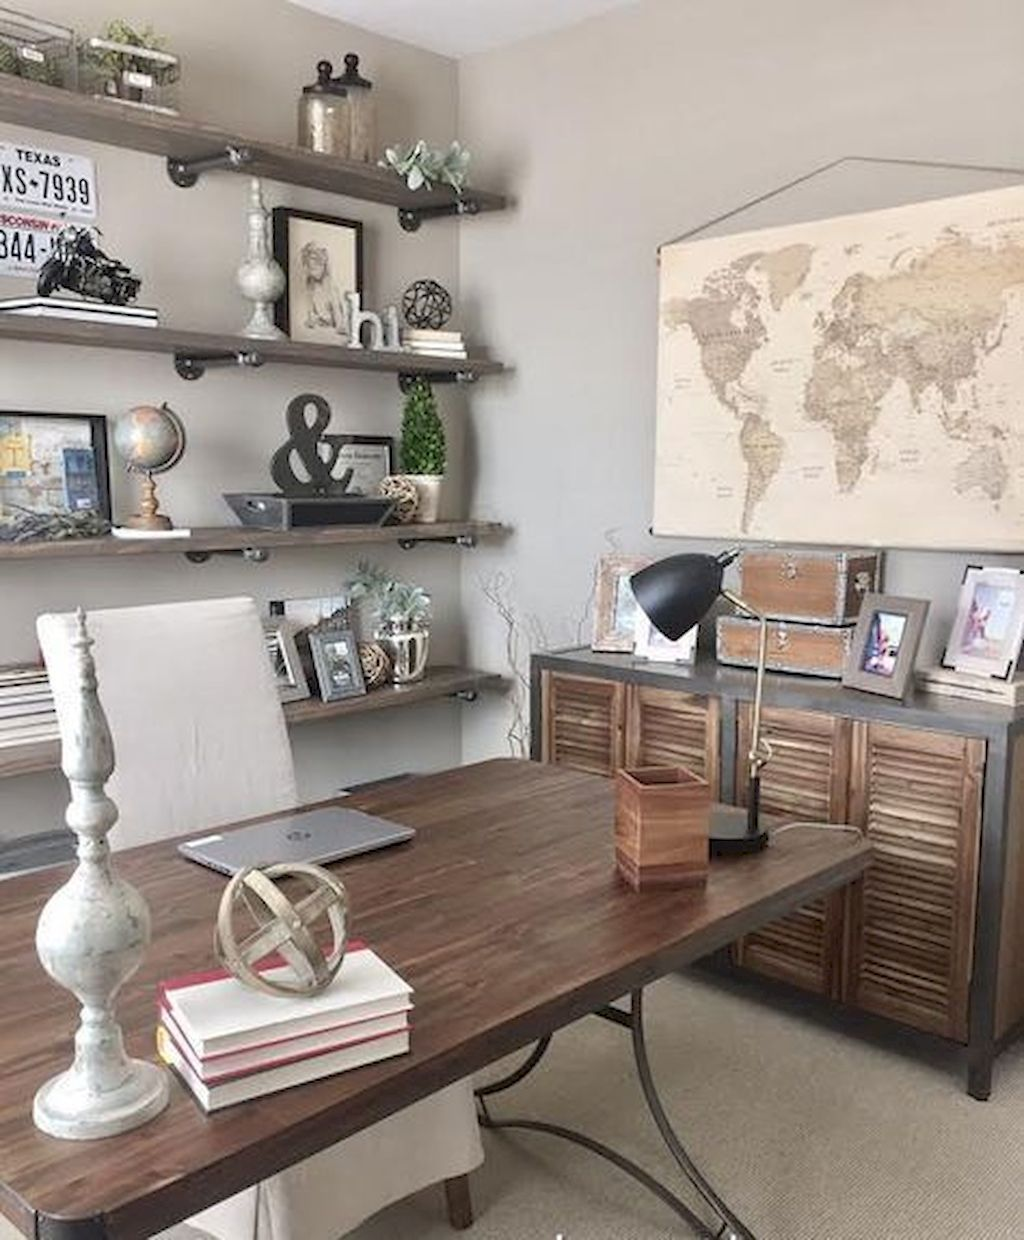 At home office ideas for men   decor vintage also how to build industrial wood shelves rh pinterest